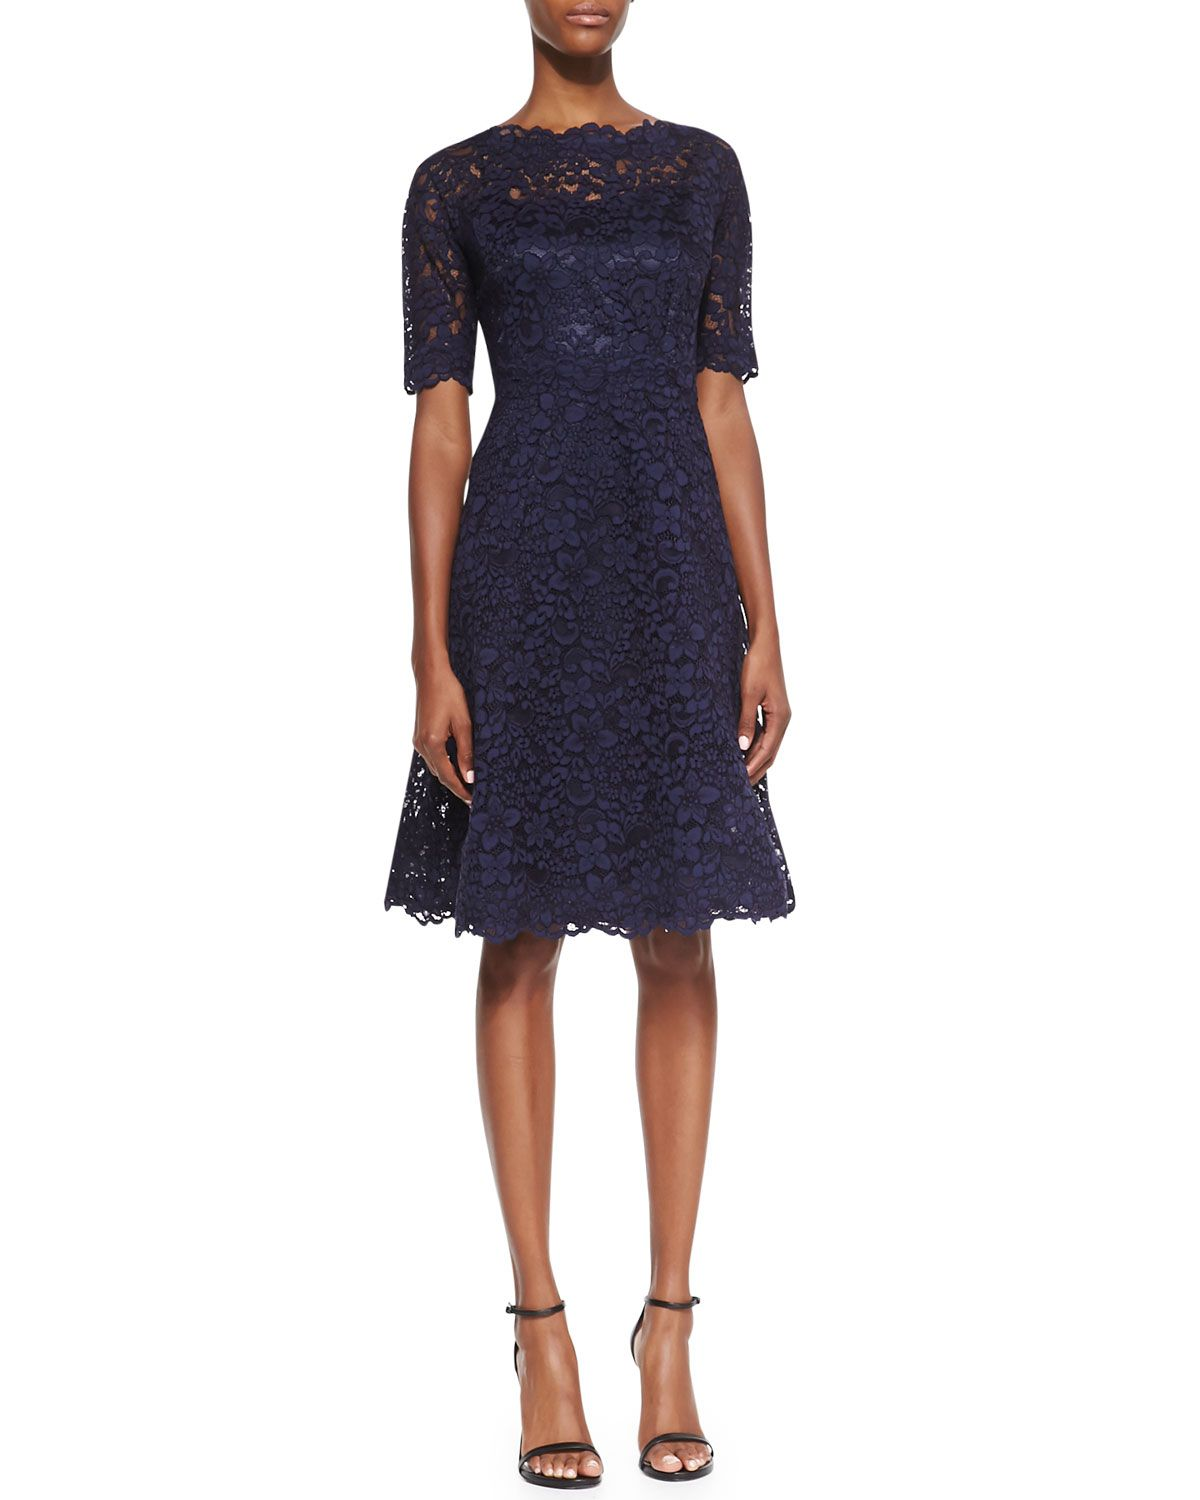 Rickie freeman for teri jon lace overlay cocktail dress neiman rickie freeman for teri jon lace overlay cocktail dress neiman marcus ombrellifo Image collections